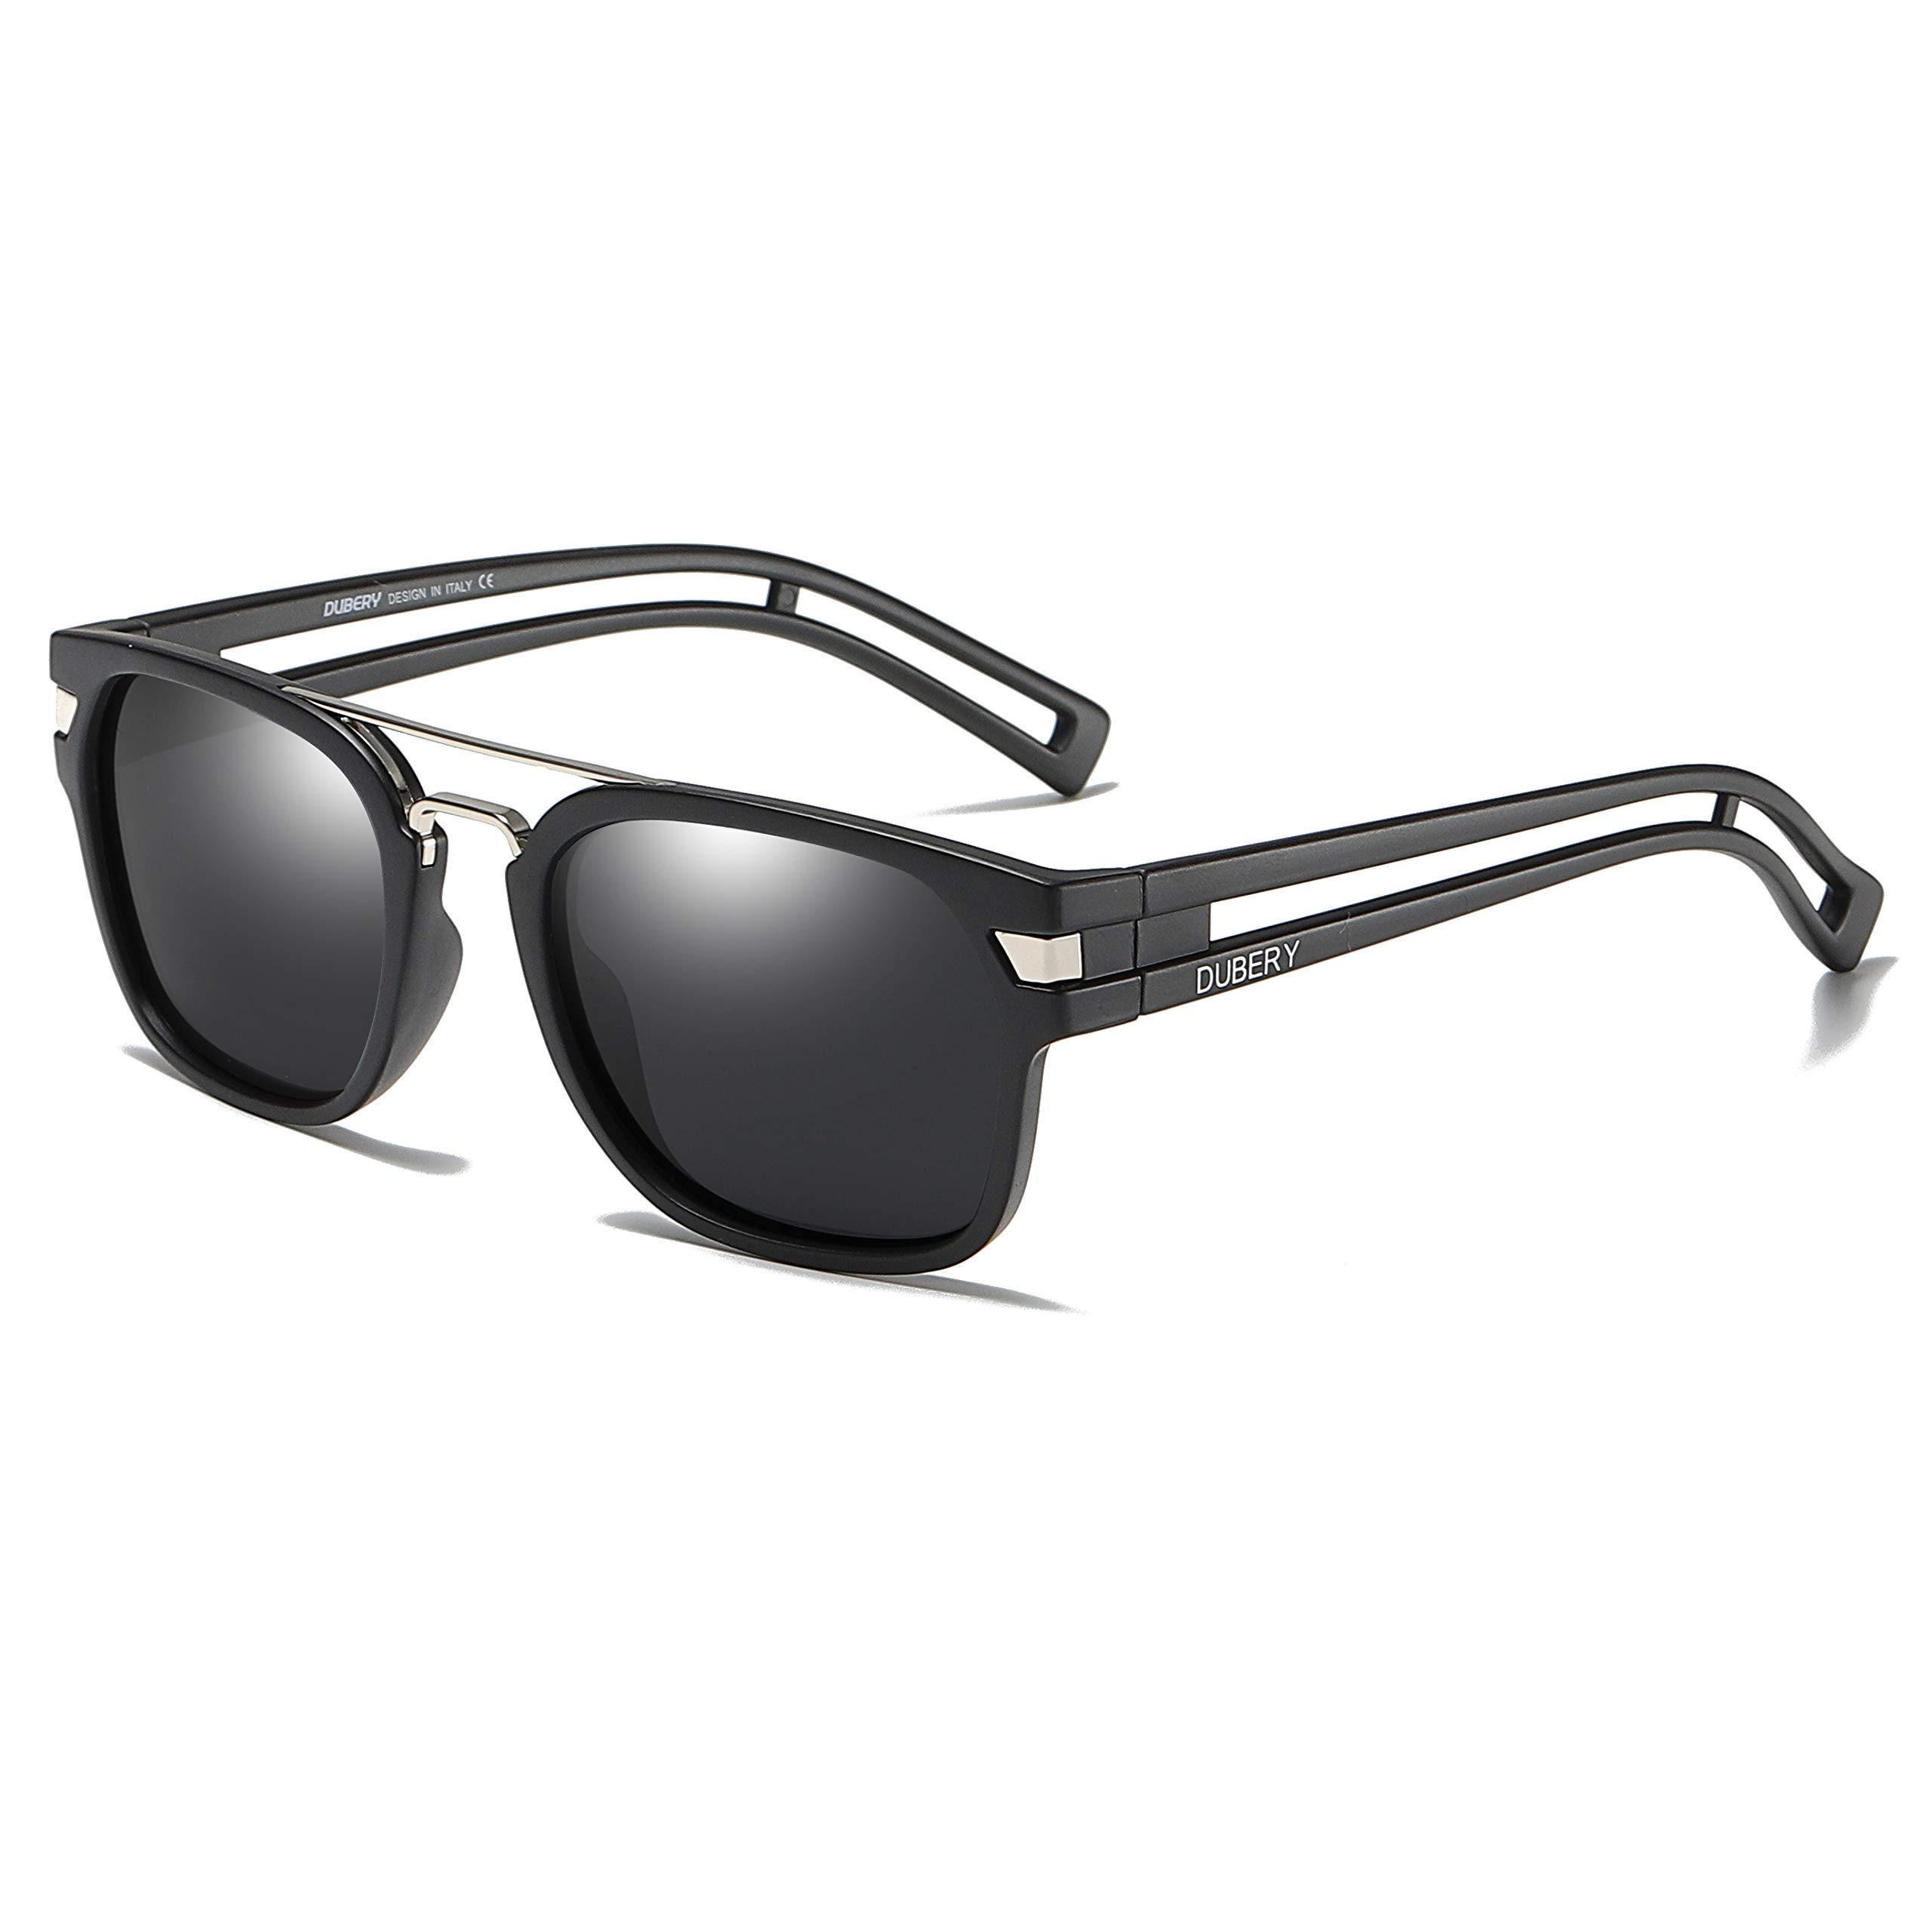 DUBERY Unisex Polarized Sport Sunglasses Outdoor Driving Riding Coating Glasses (#1) by DUBERY